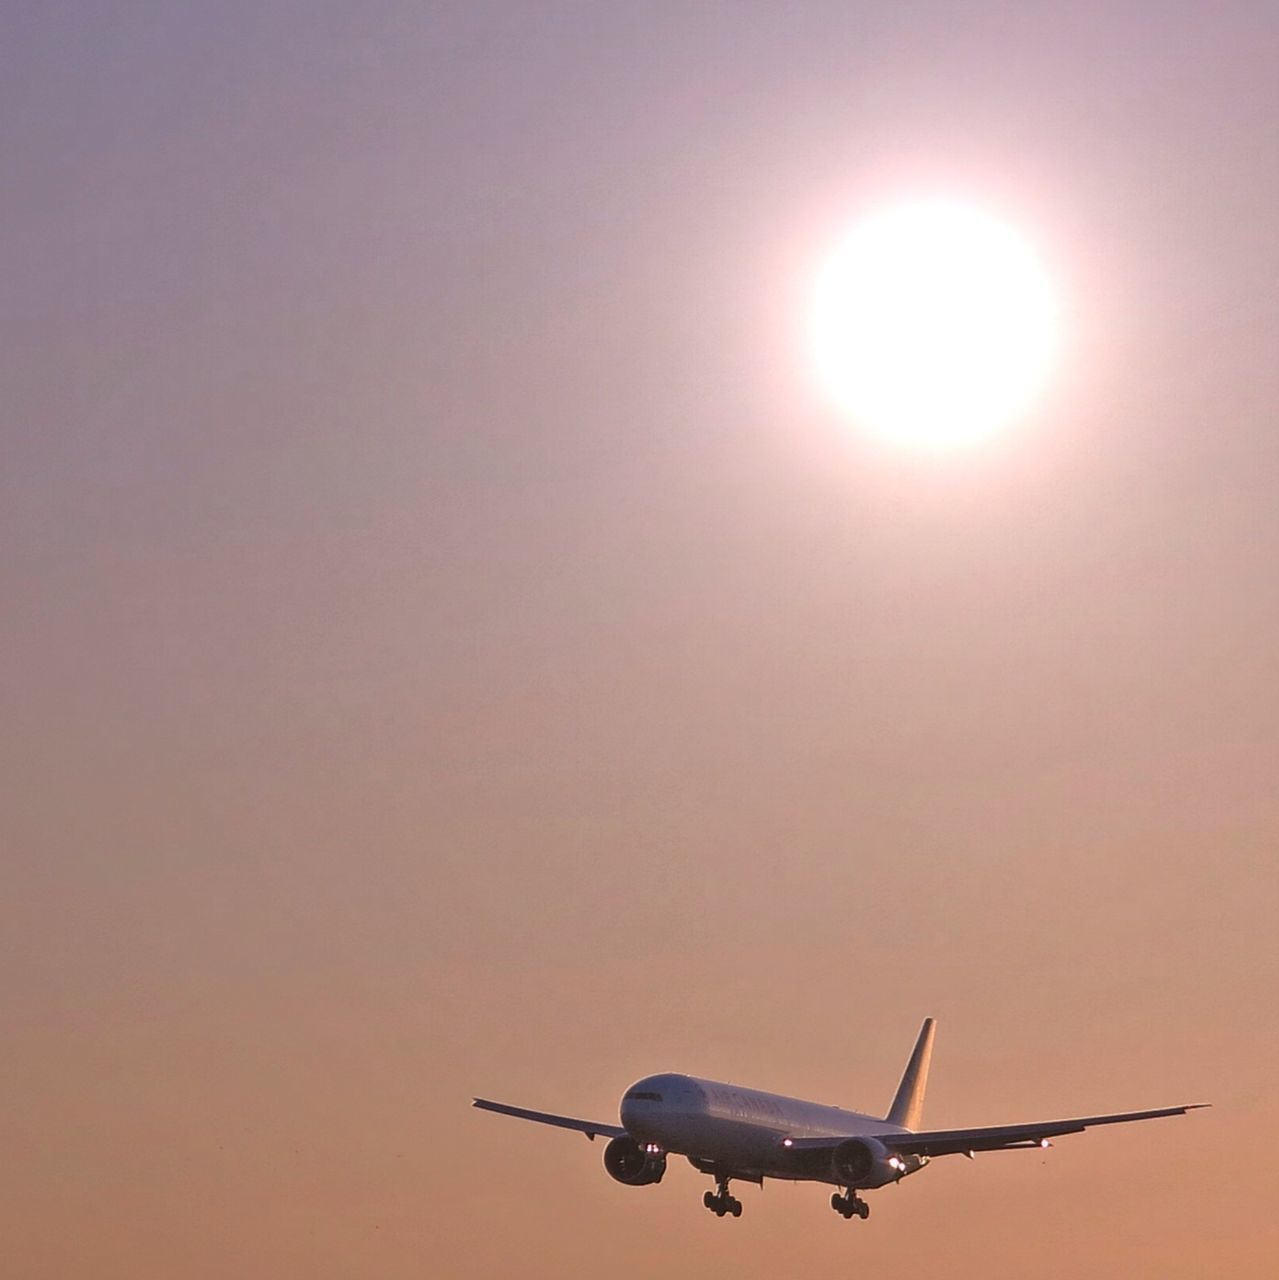 sun, airplane, sunset, transportation, journey, travel, flying, sunlight, sky, silhouette, clear sky, low angle view, air vehicle, no people, outdoors, day